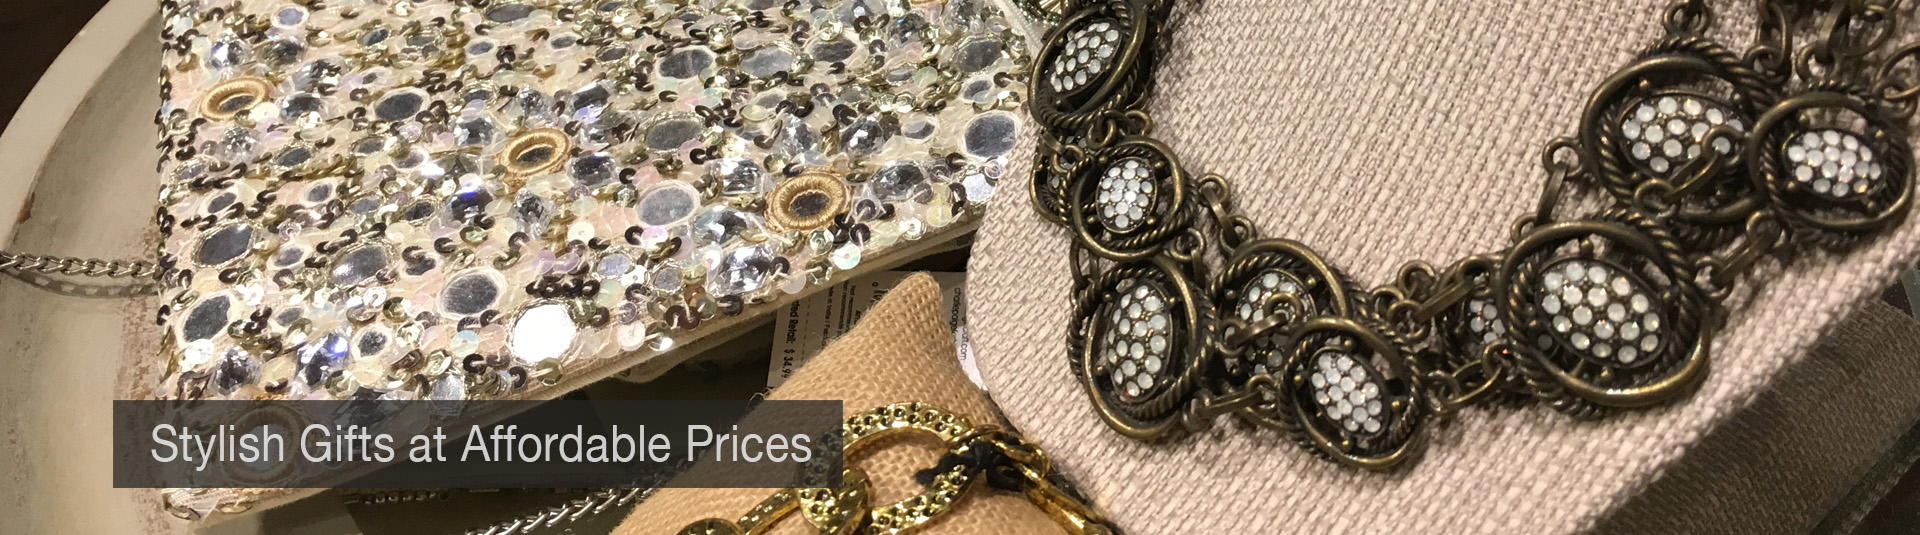 Gifts And Decor For All Seasons Occasions At Benson Stone